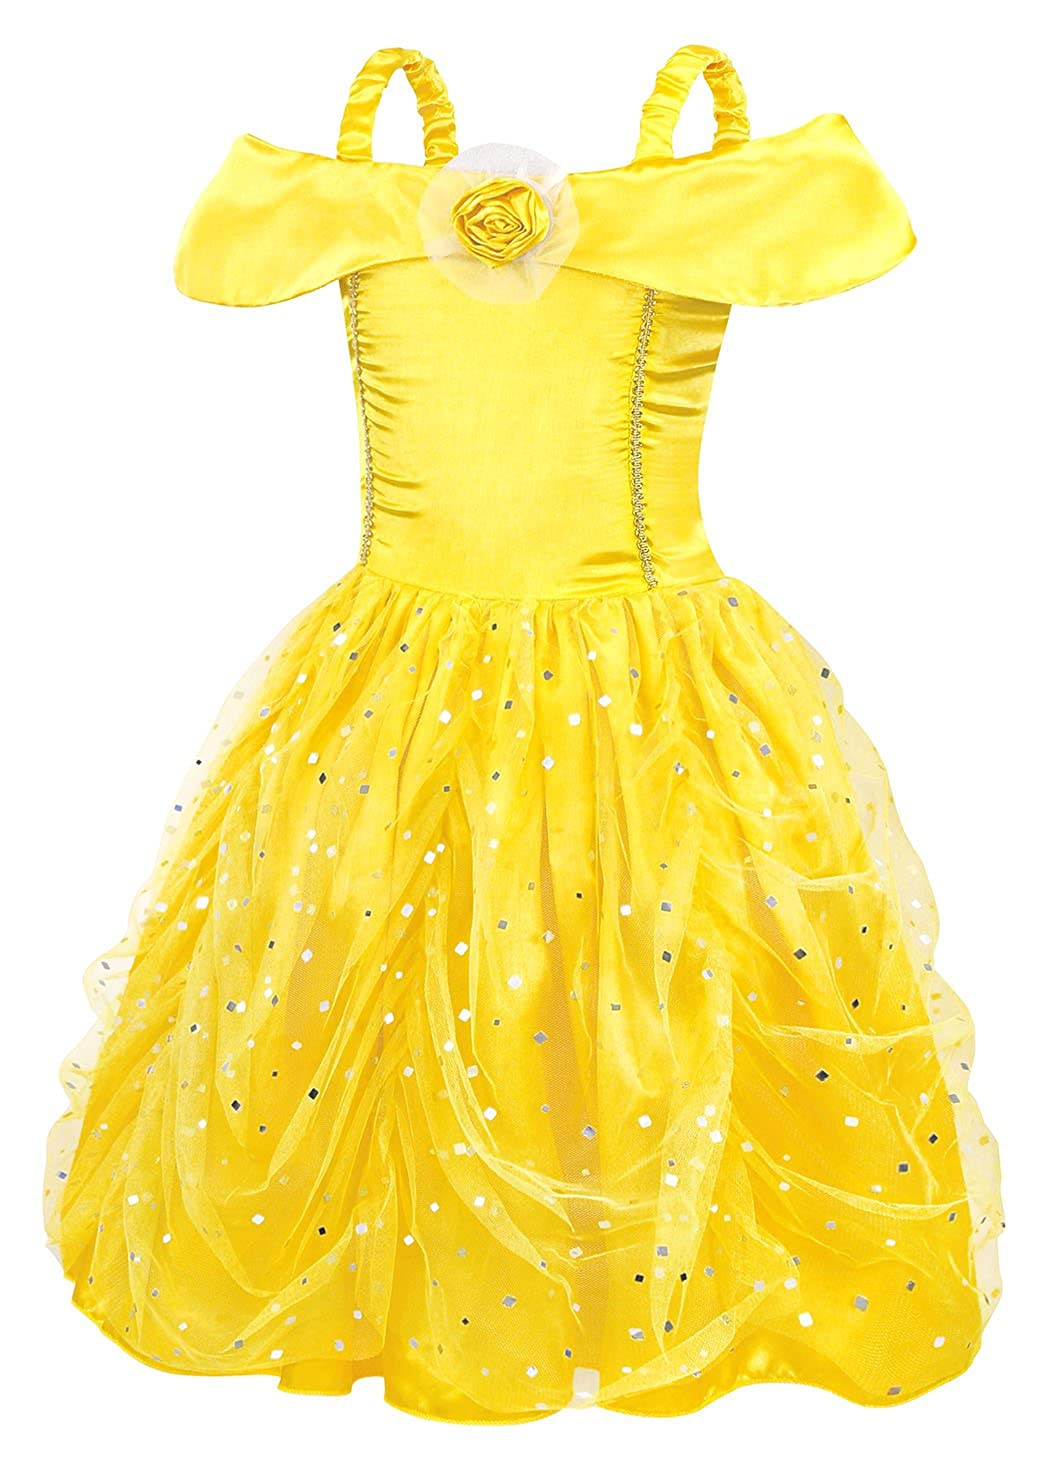 90e2bcfd4168 AmzBarley Belle Dress Costume Girls Princess Party Layered Birthday Kids  Clothes: Amazon.ca: Clothing & Accessories